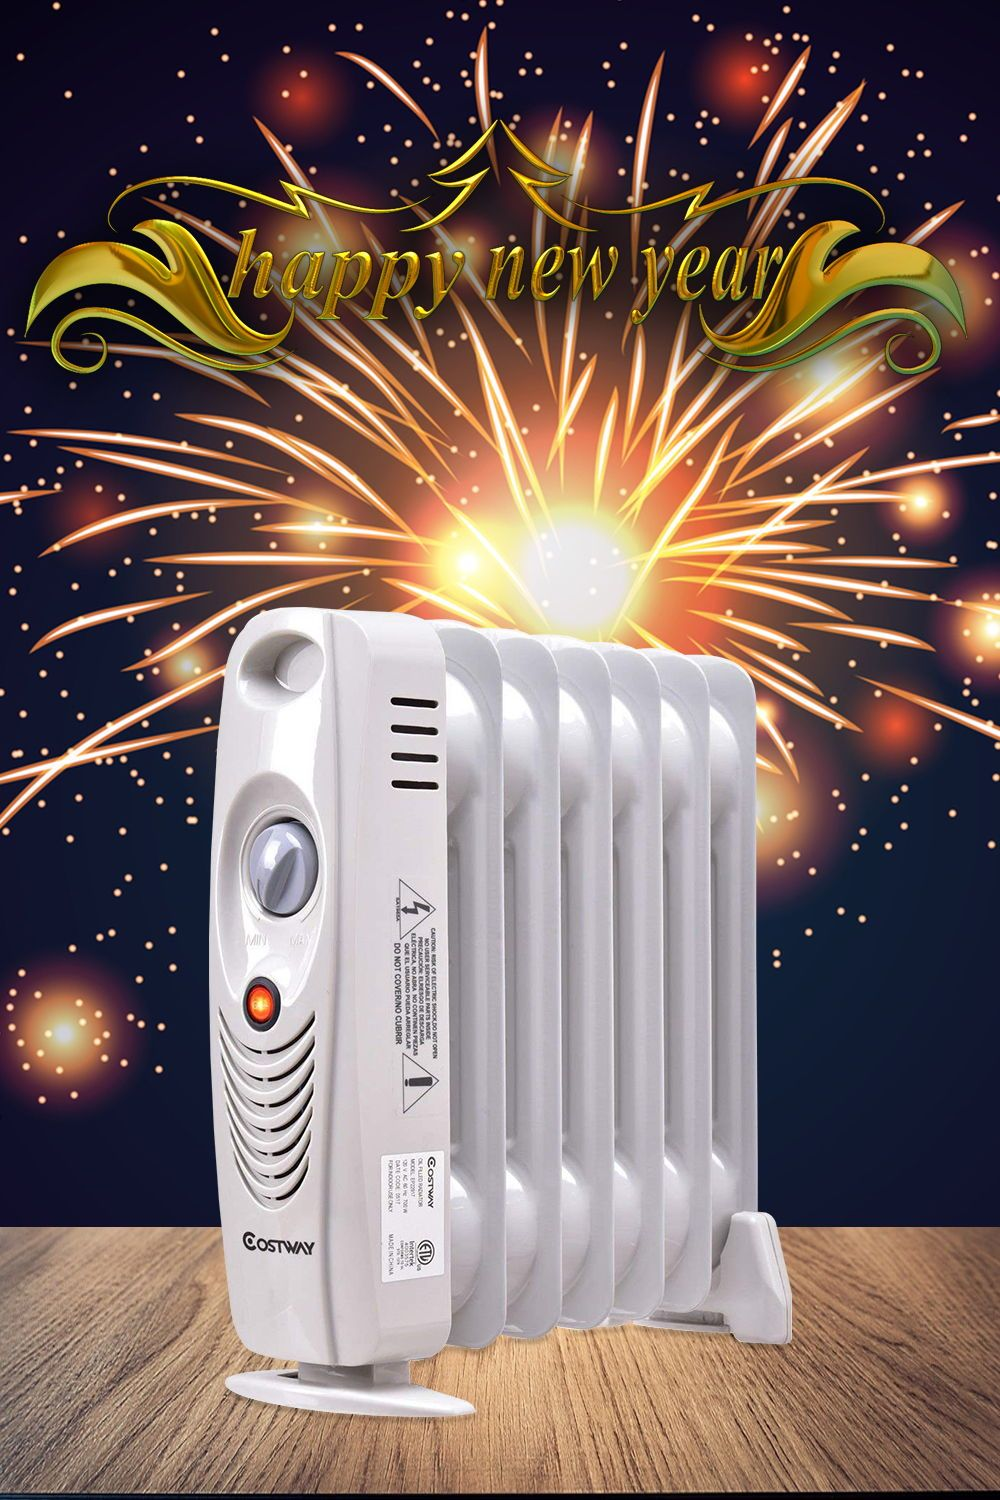 Top 10 Oil Filled Radiant Heaters Feb 2020 Reviews And Buyers Guide Radiant Heaters Radiator Heater Oil Heater